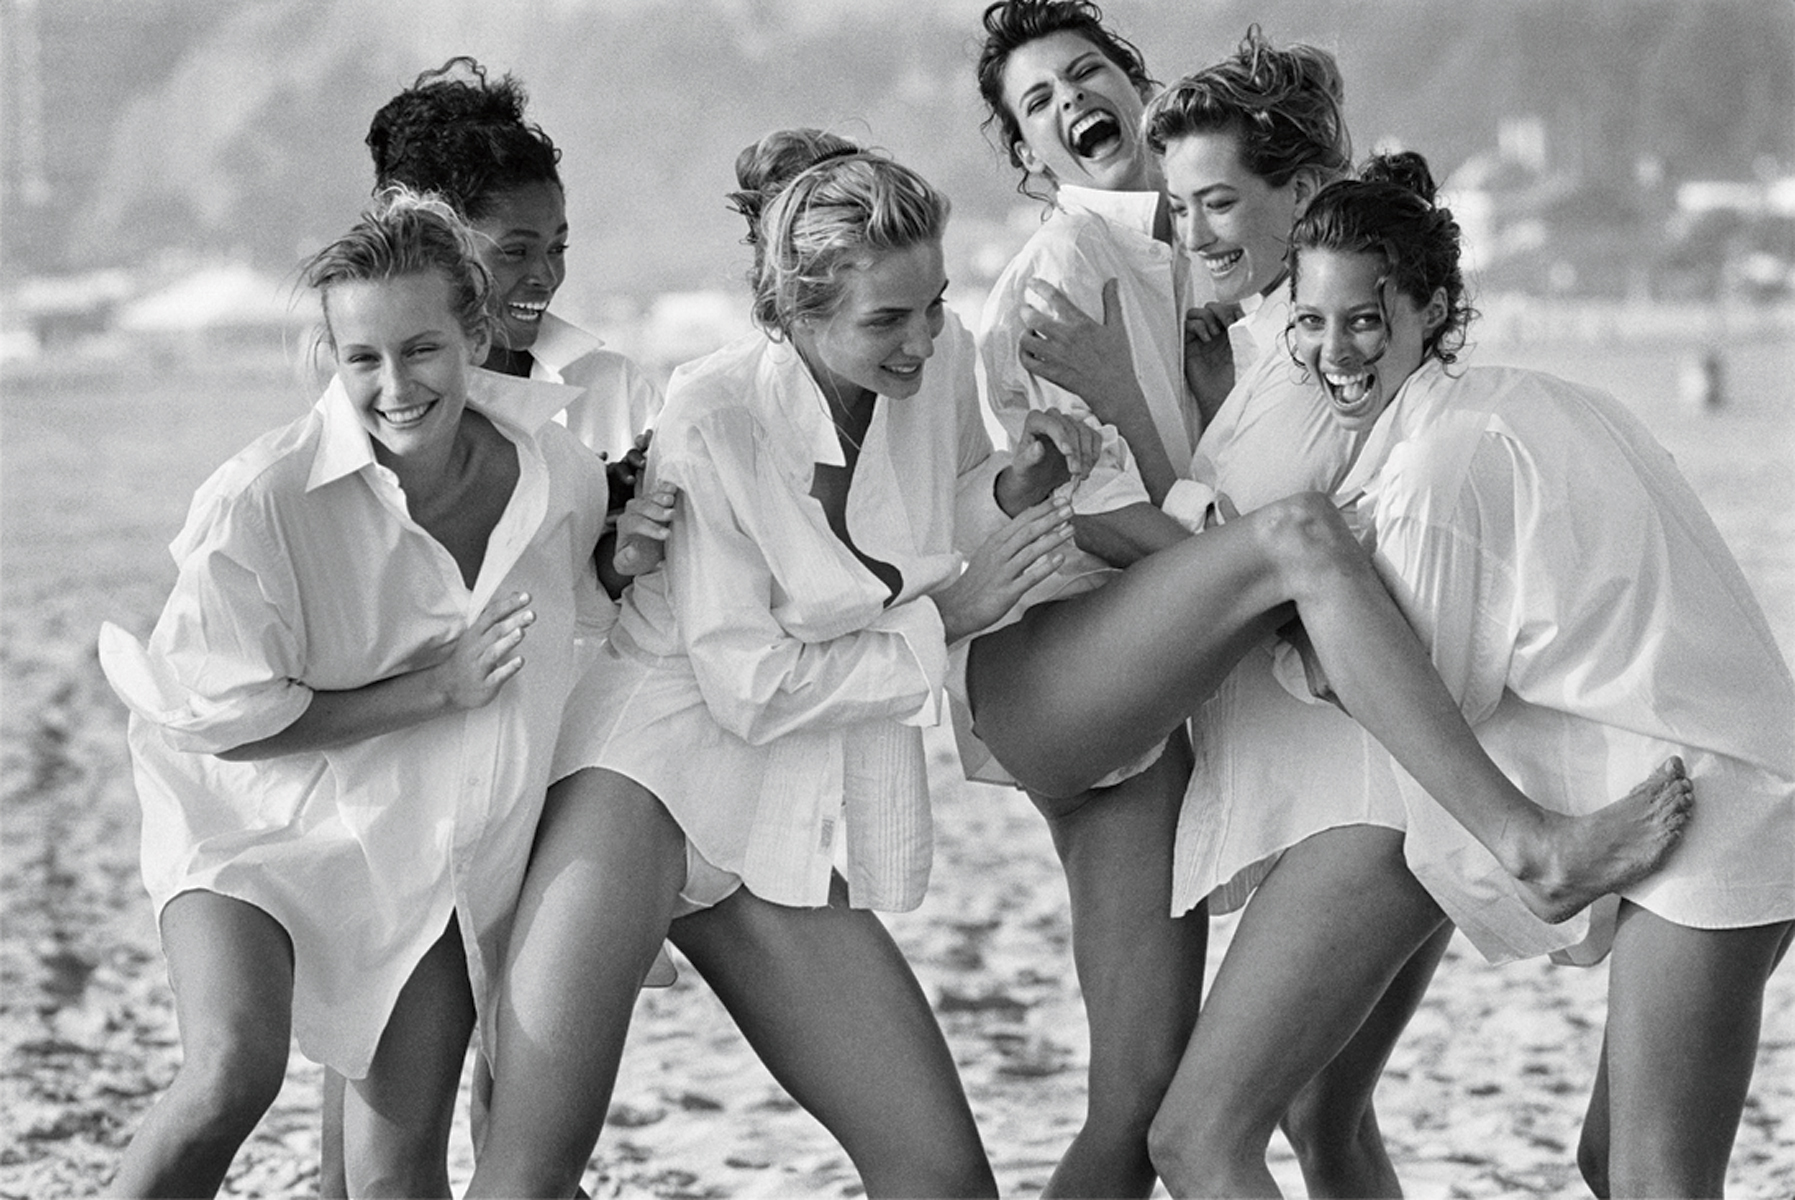 peter-lindbergh-vogue-04_13361811887